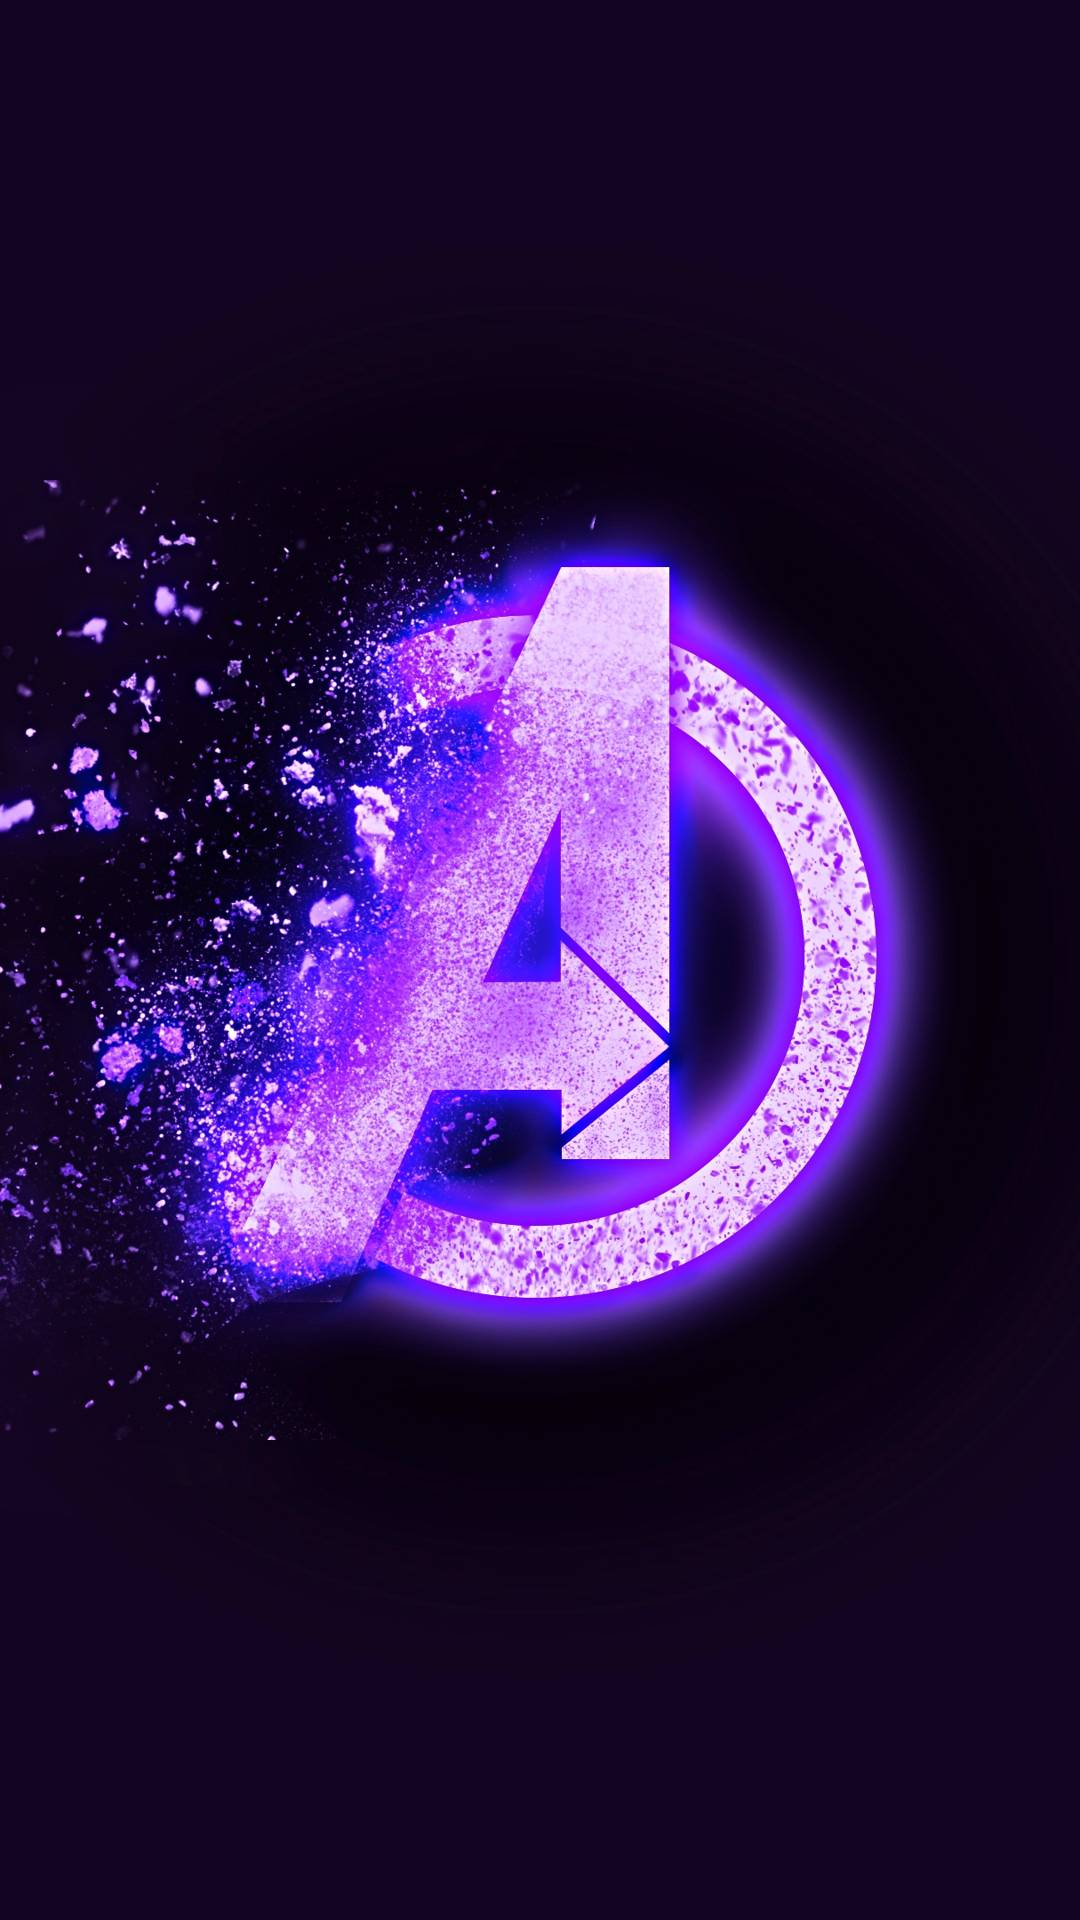 Sports Wallpapers Hd Avengers Endgame Dust Logo Iphone Wallpaper Iphone